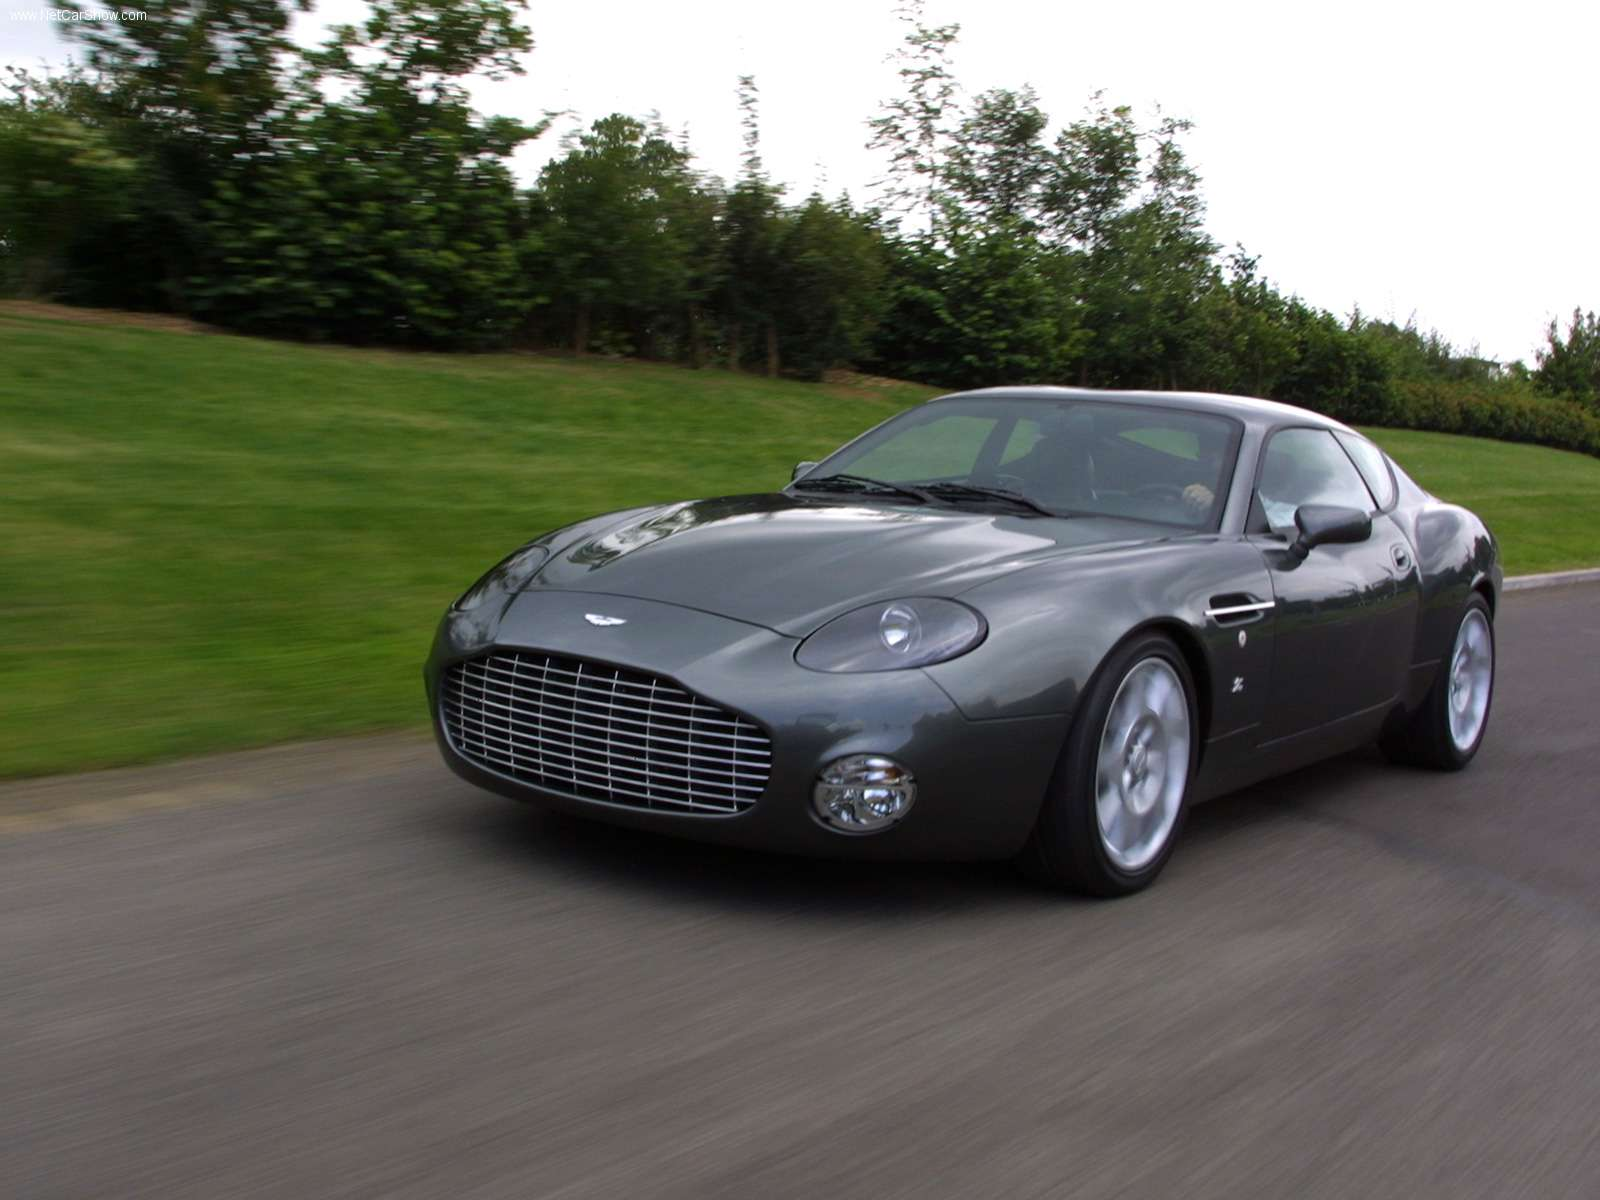 tuning aston martin db7 coupe 2002 online accessories and spare parts for tuning aston martin. Black Bedroom Furniture Sets. Home Design Ideas